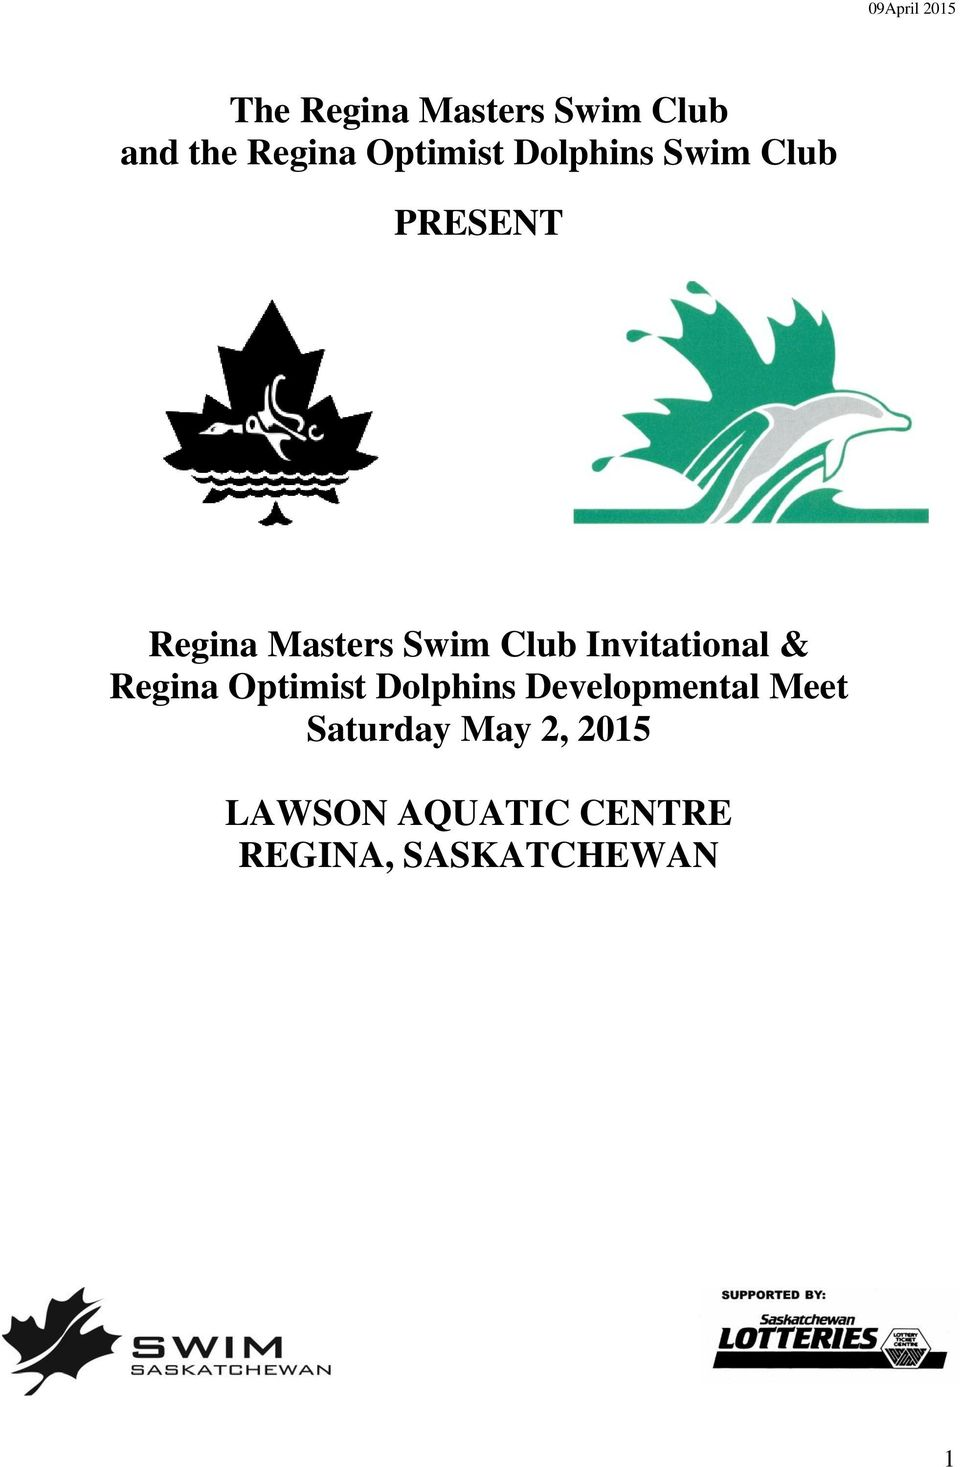 Invitational & Regina Optimist Dolphins Developmental